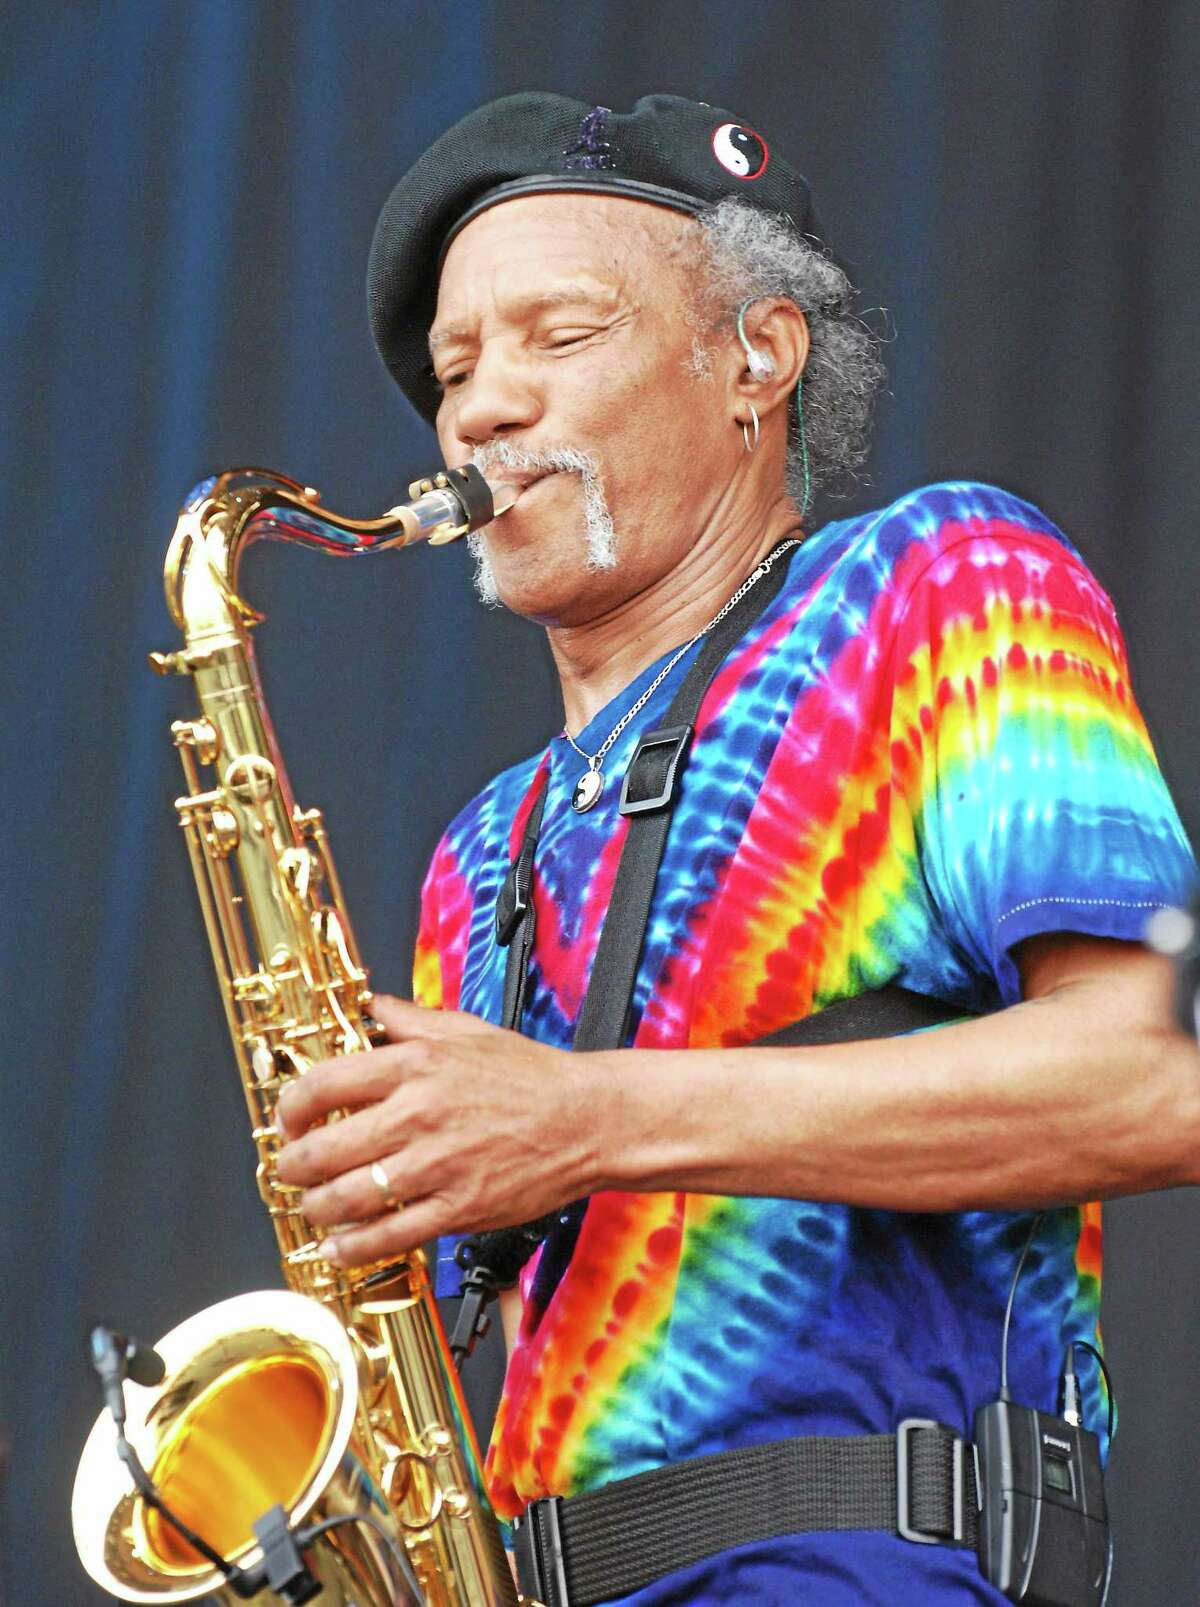 Direct from Huntington, Massachusetts, New Orleans musical royalty Charles Neville will be in the Elm City the next two Tuesday nights.